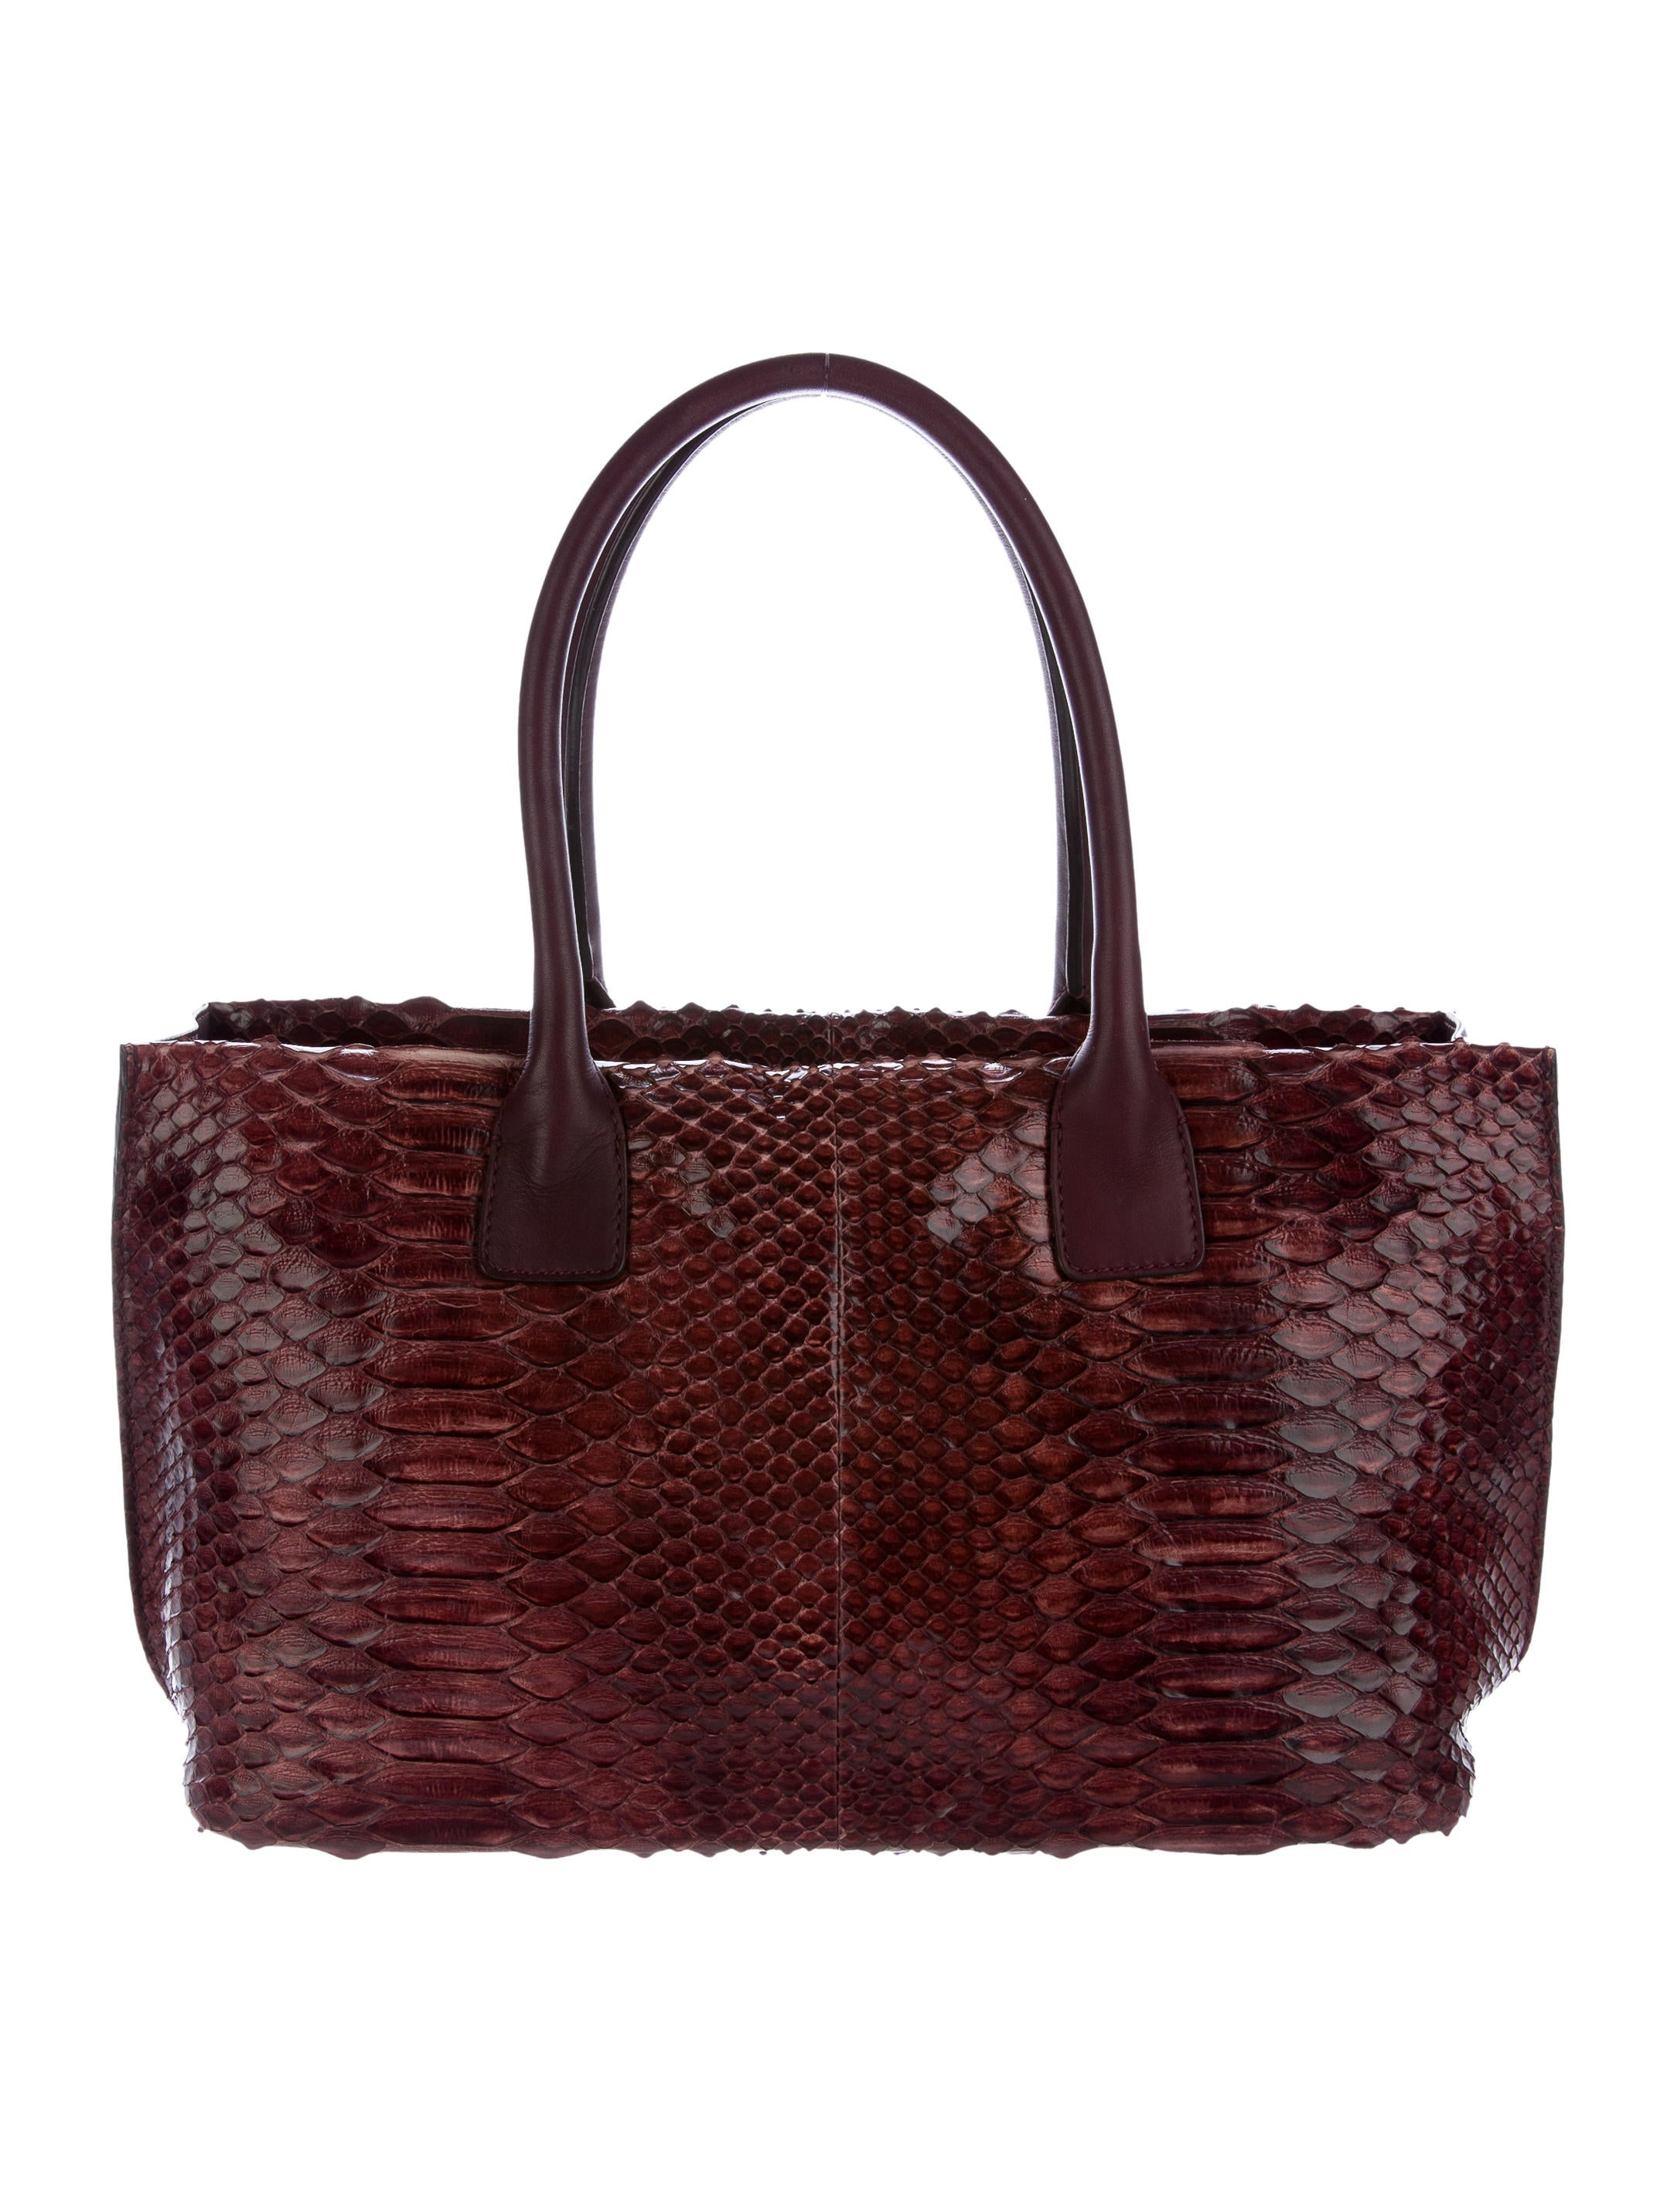 Brunello Cucinelli Python Handle Bag Handbags Bru46368